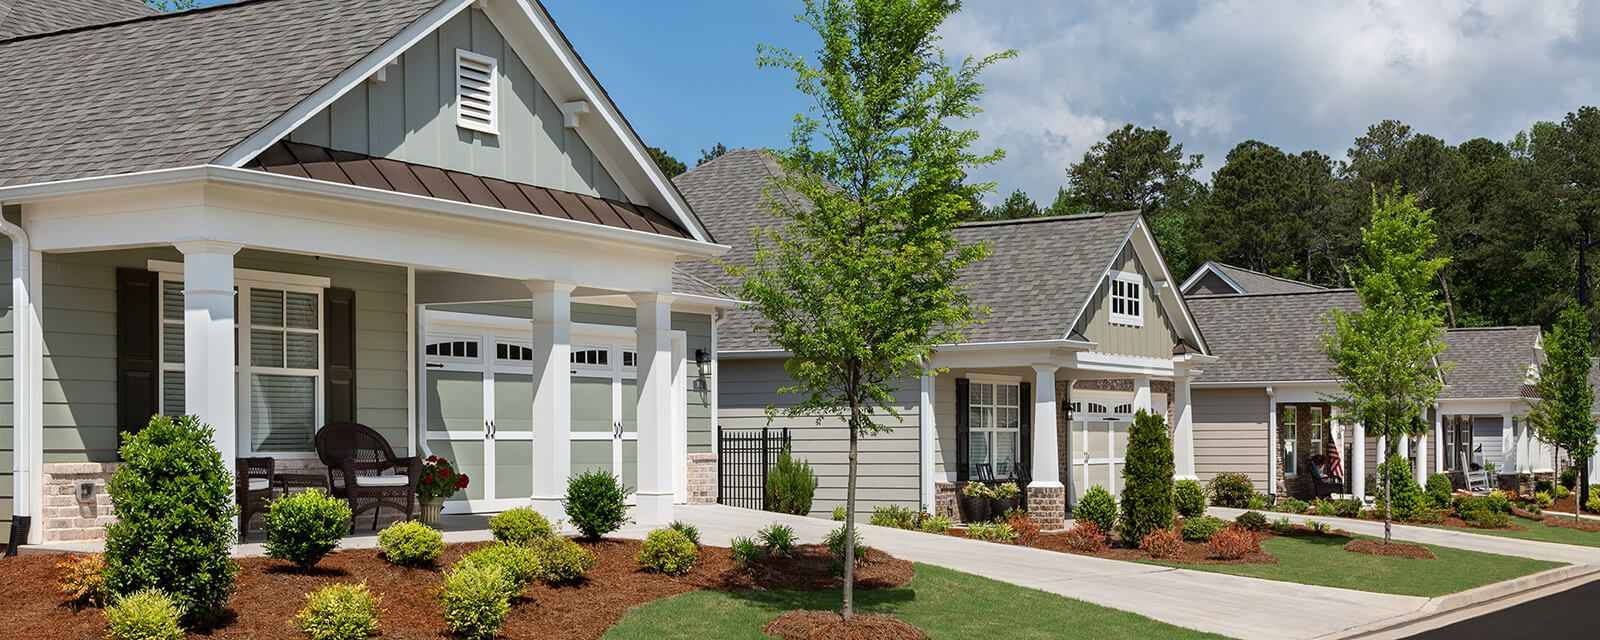 Thoughtful architecture goes into designing our many ranch style homes available in our 55+ active adult communities located throughout Georgia, including Cherokee, Cobb and Paulding counties.